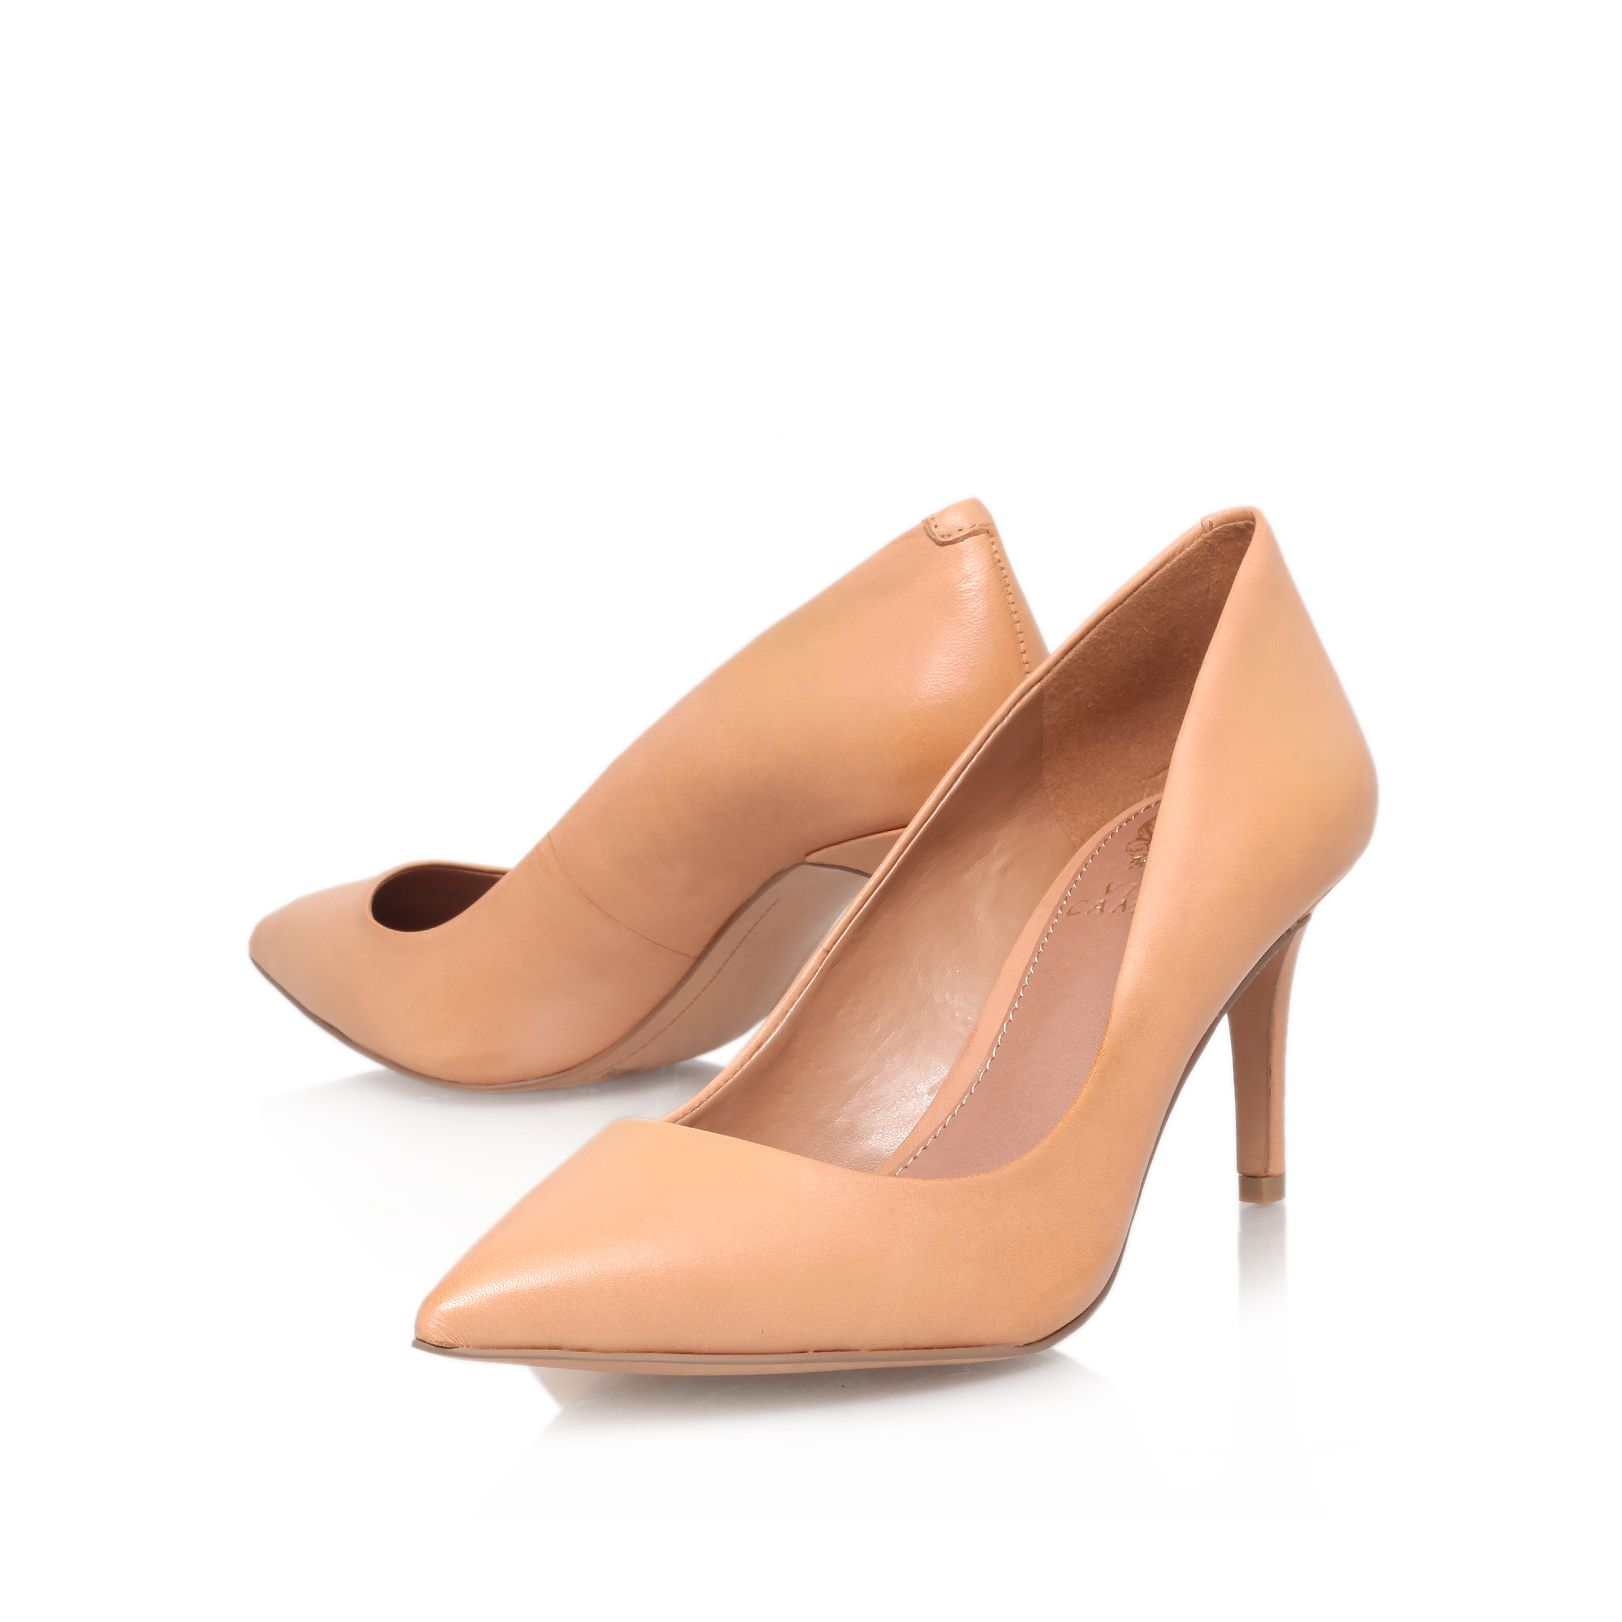 Cassina court shoes